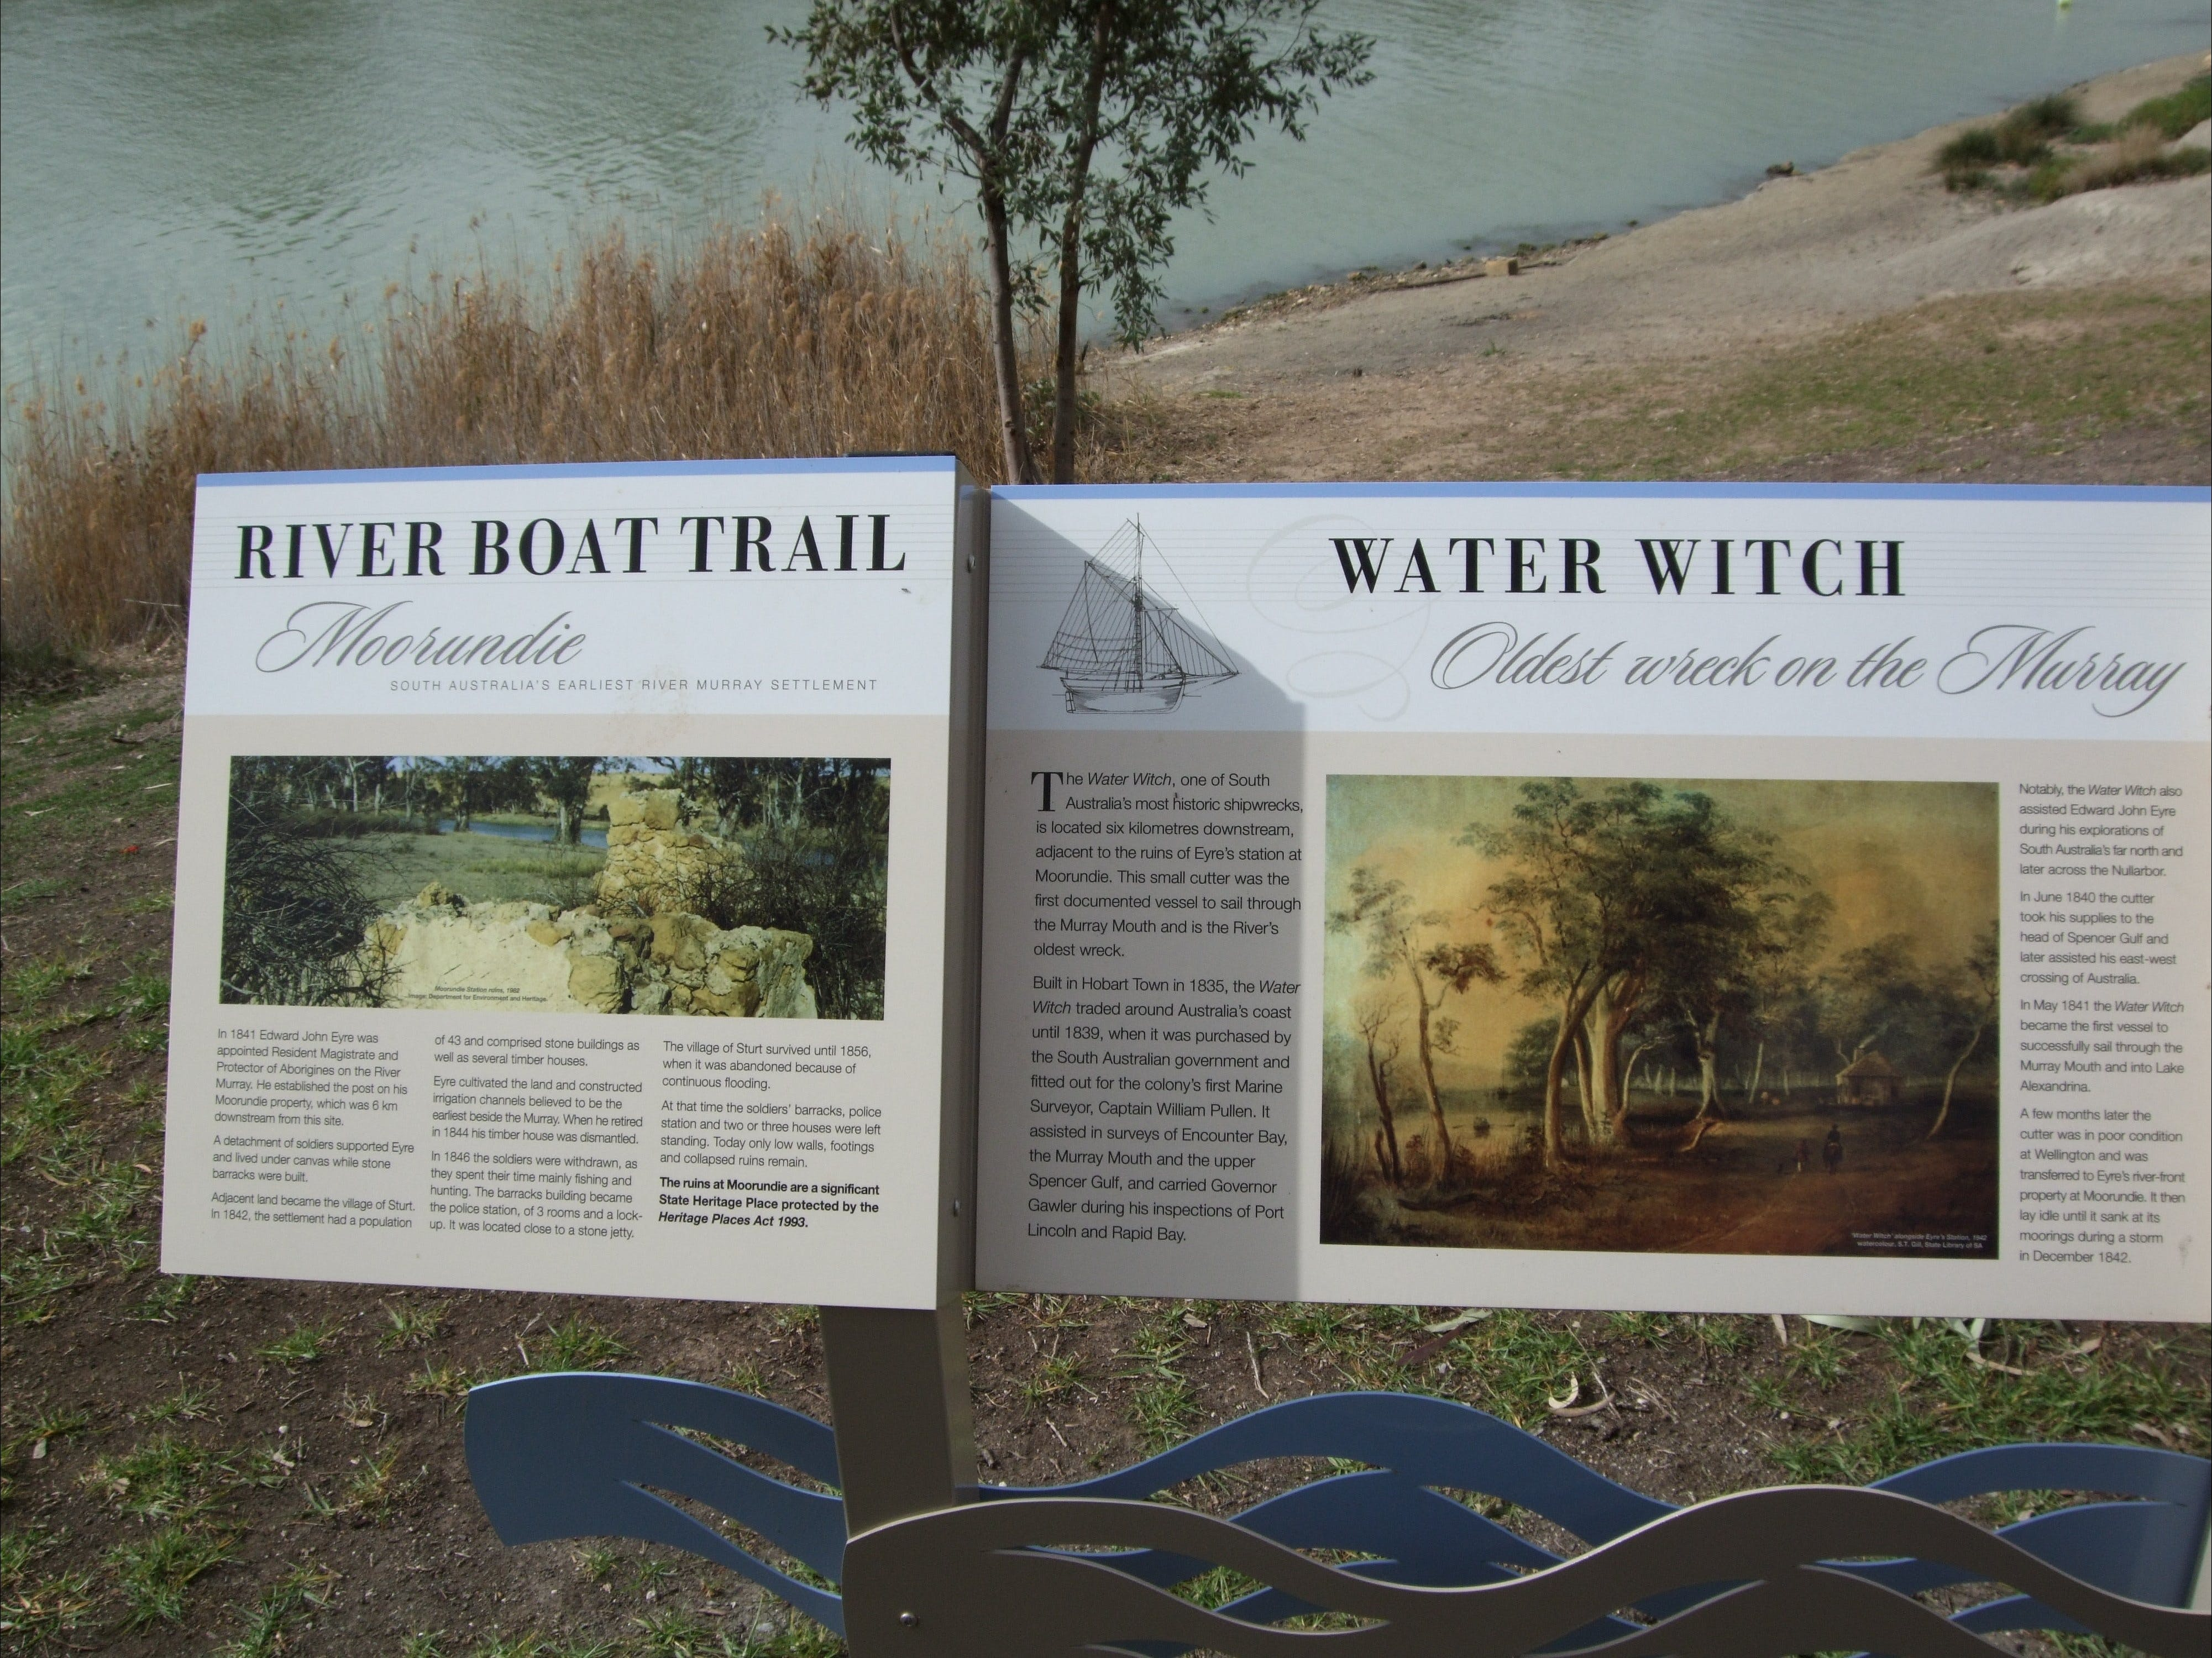 River Boat Trail - eAccommodation